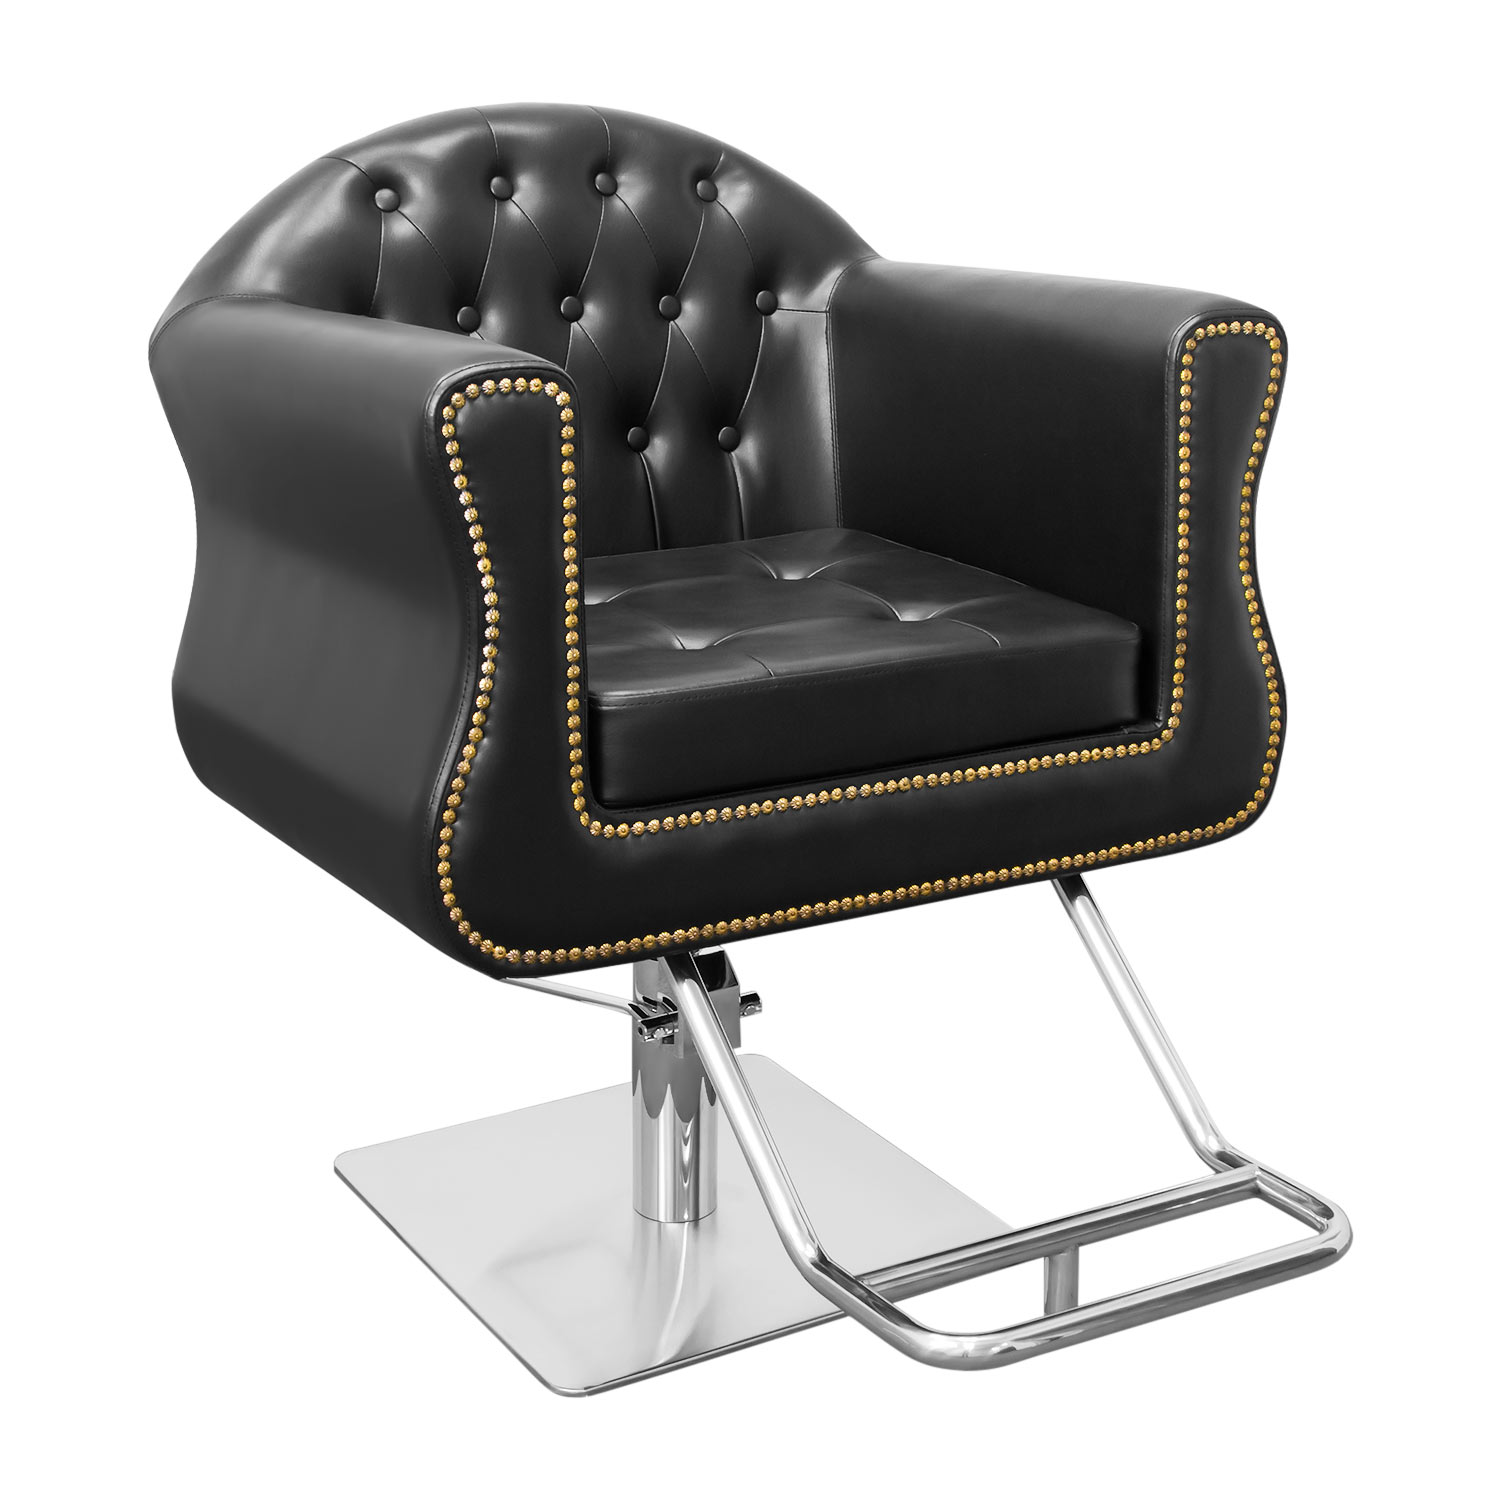 Coronado Hair Salon Styling Chair With Nailhead Trim  main product image